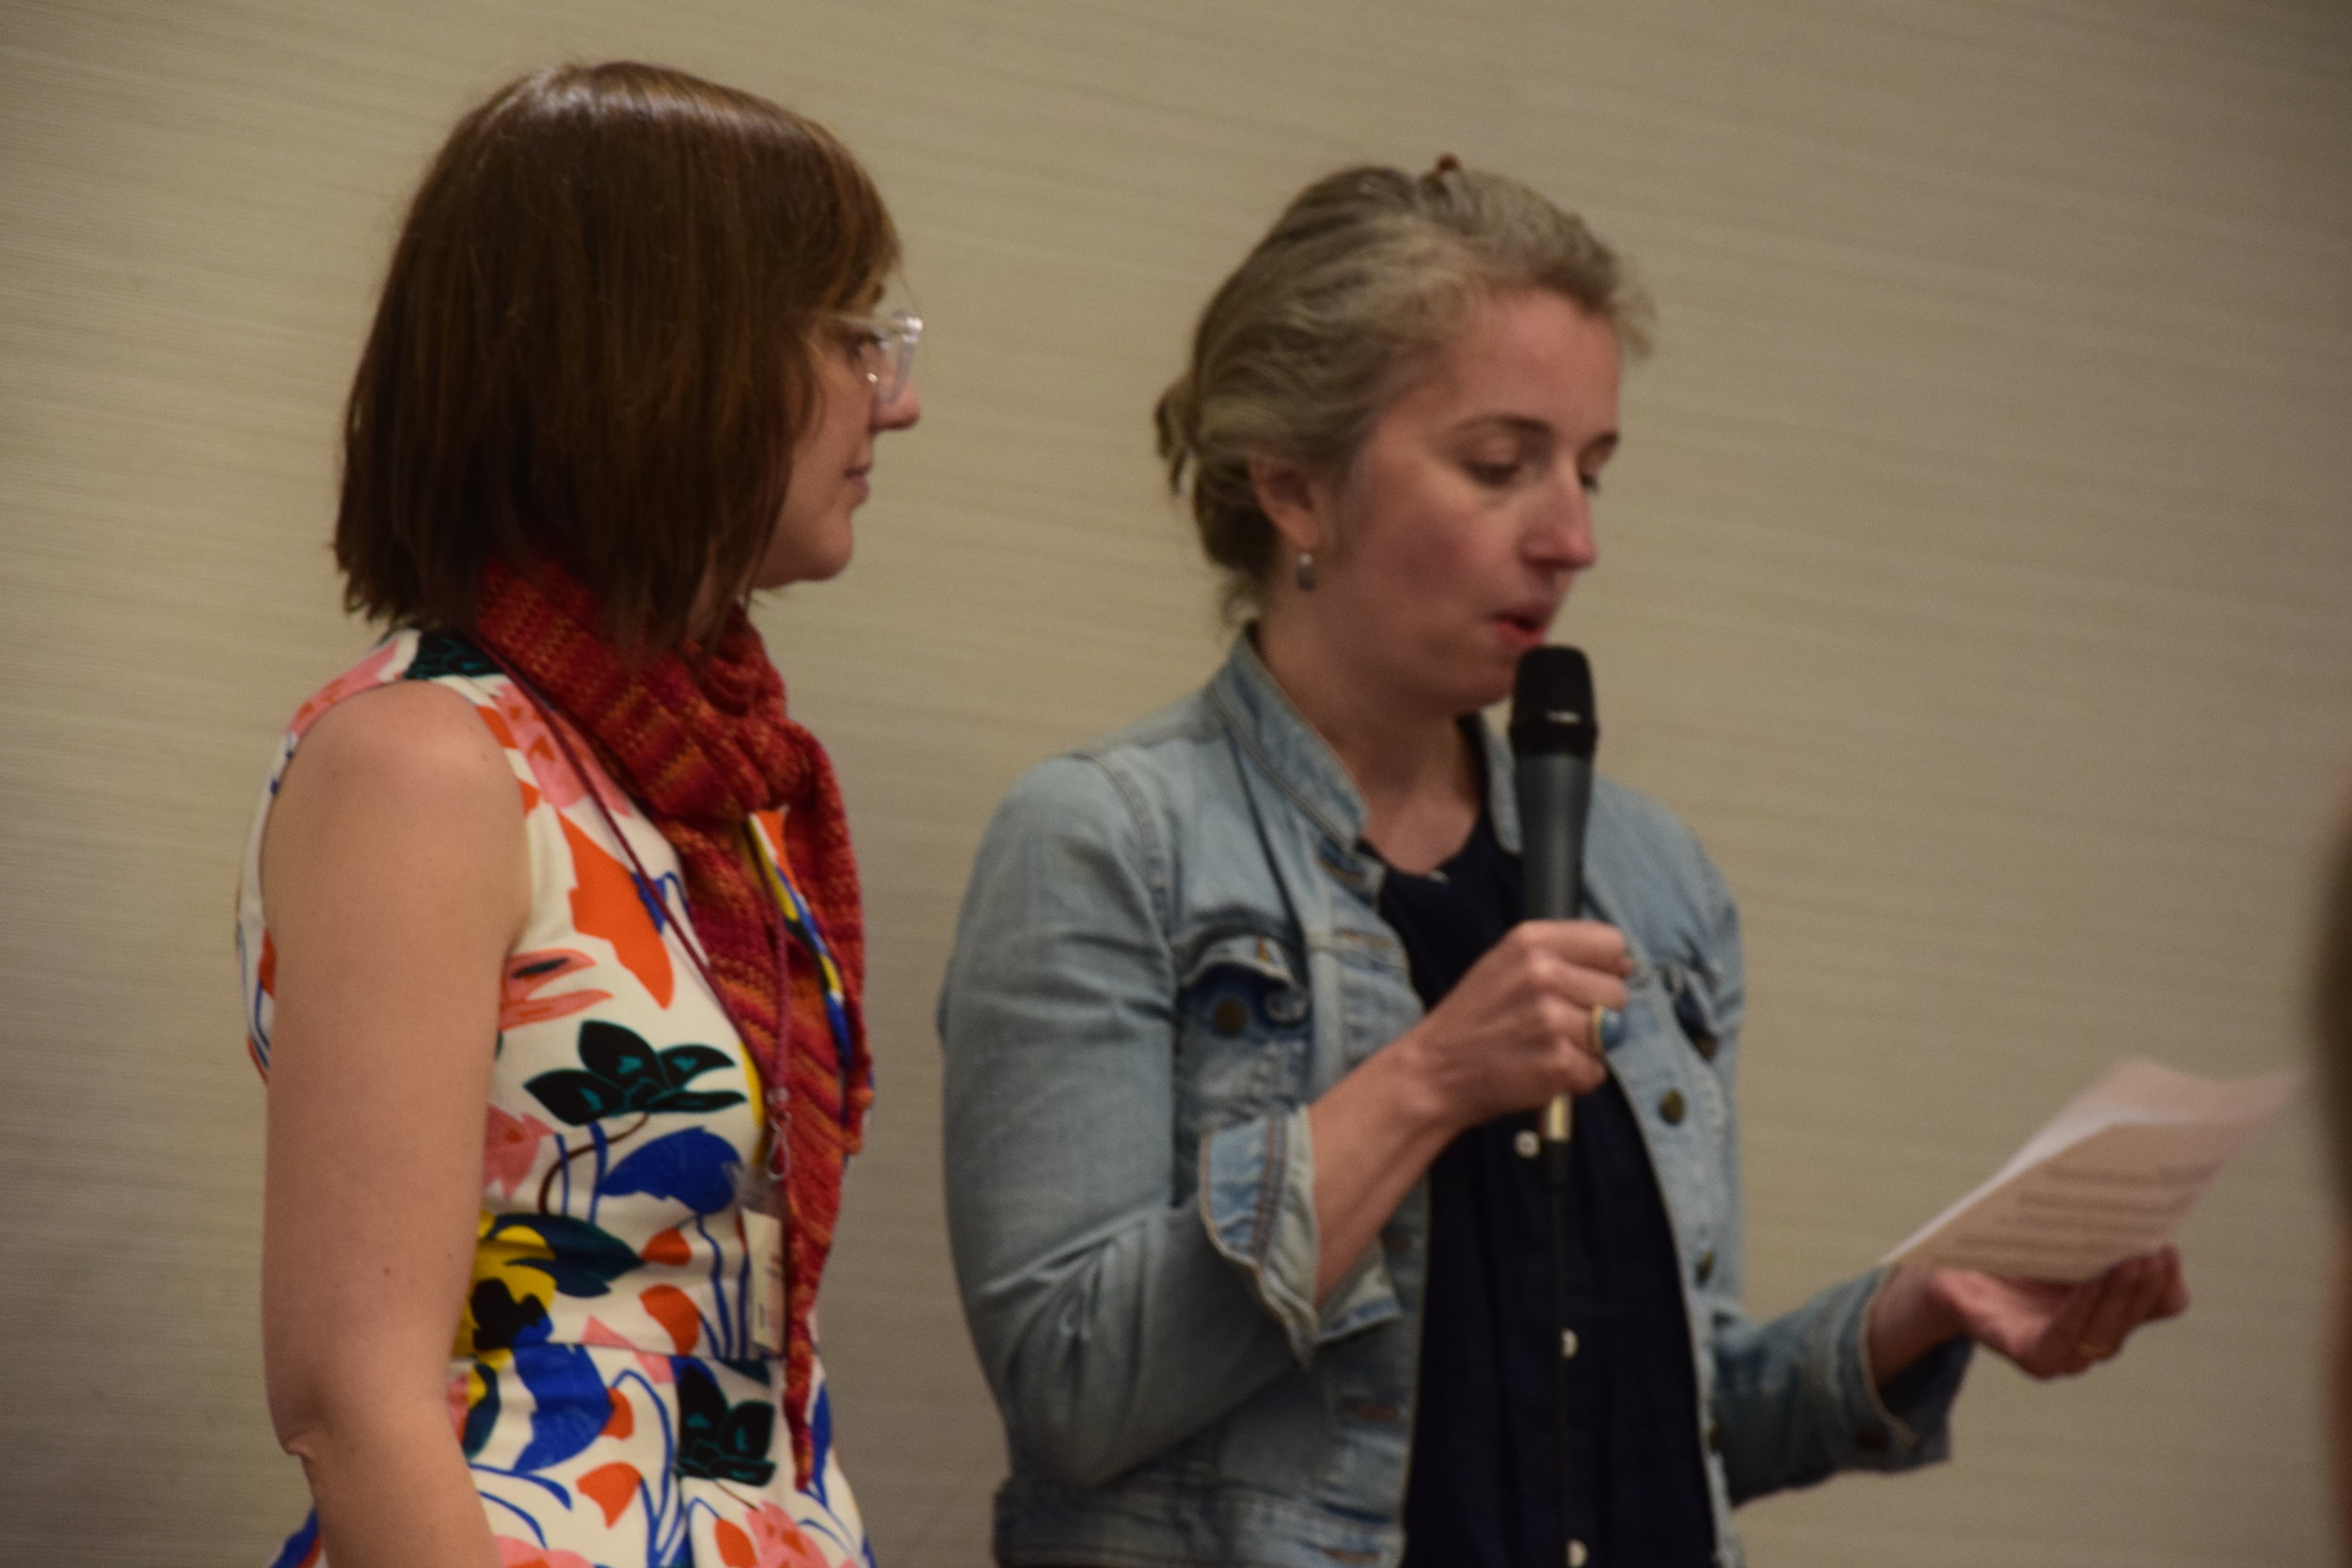 Scholarship committee co-chairs Jade Made and Jill Baron note this year's Scholarship recipients/Photo: ESENDOM.